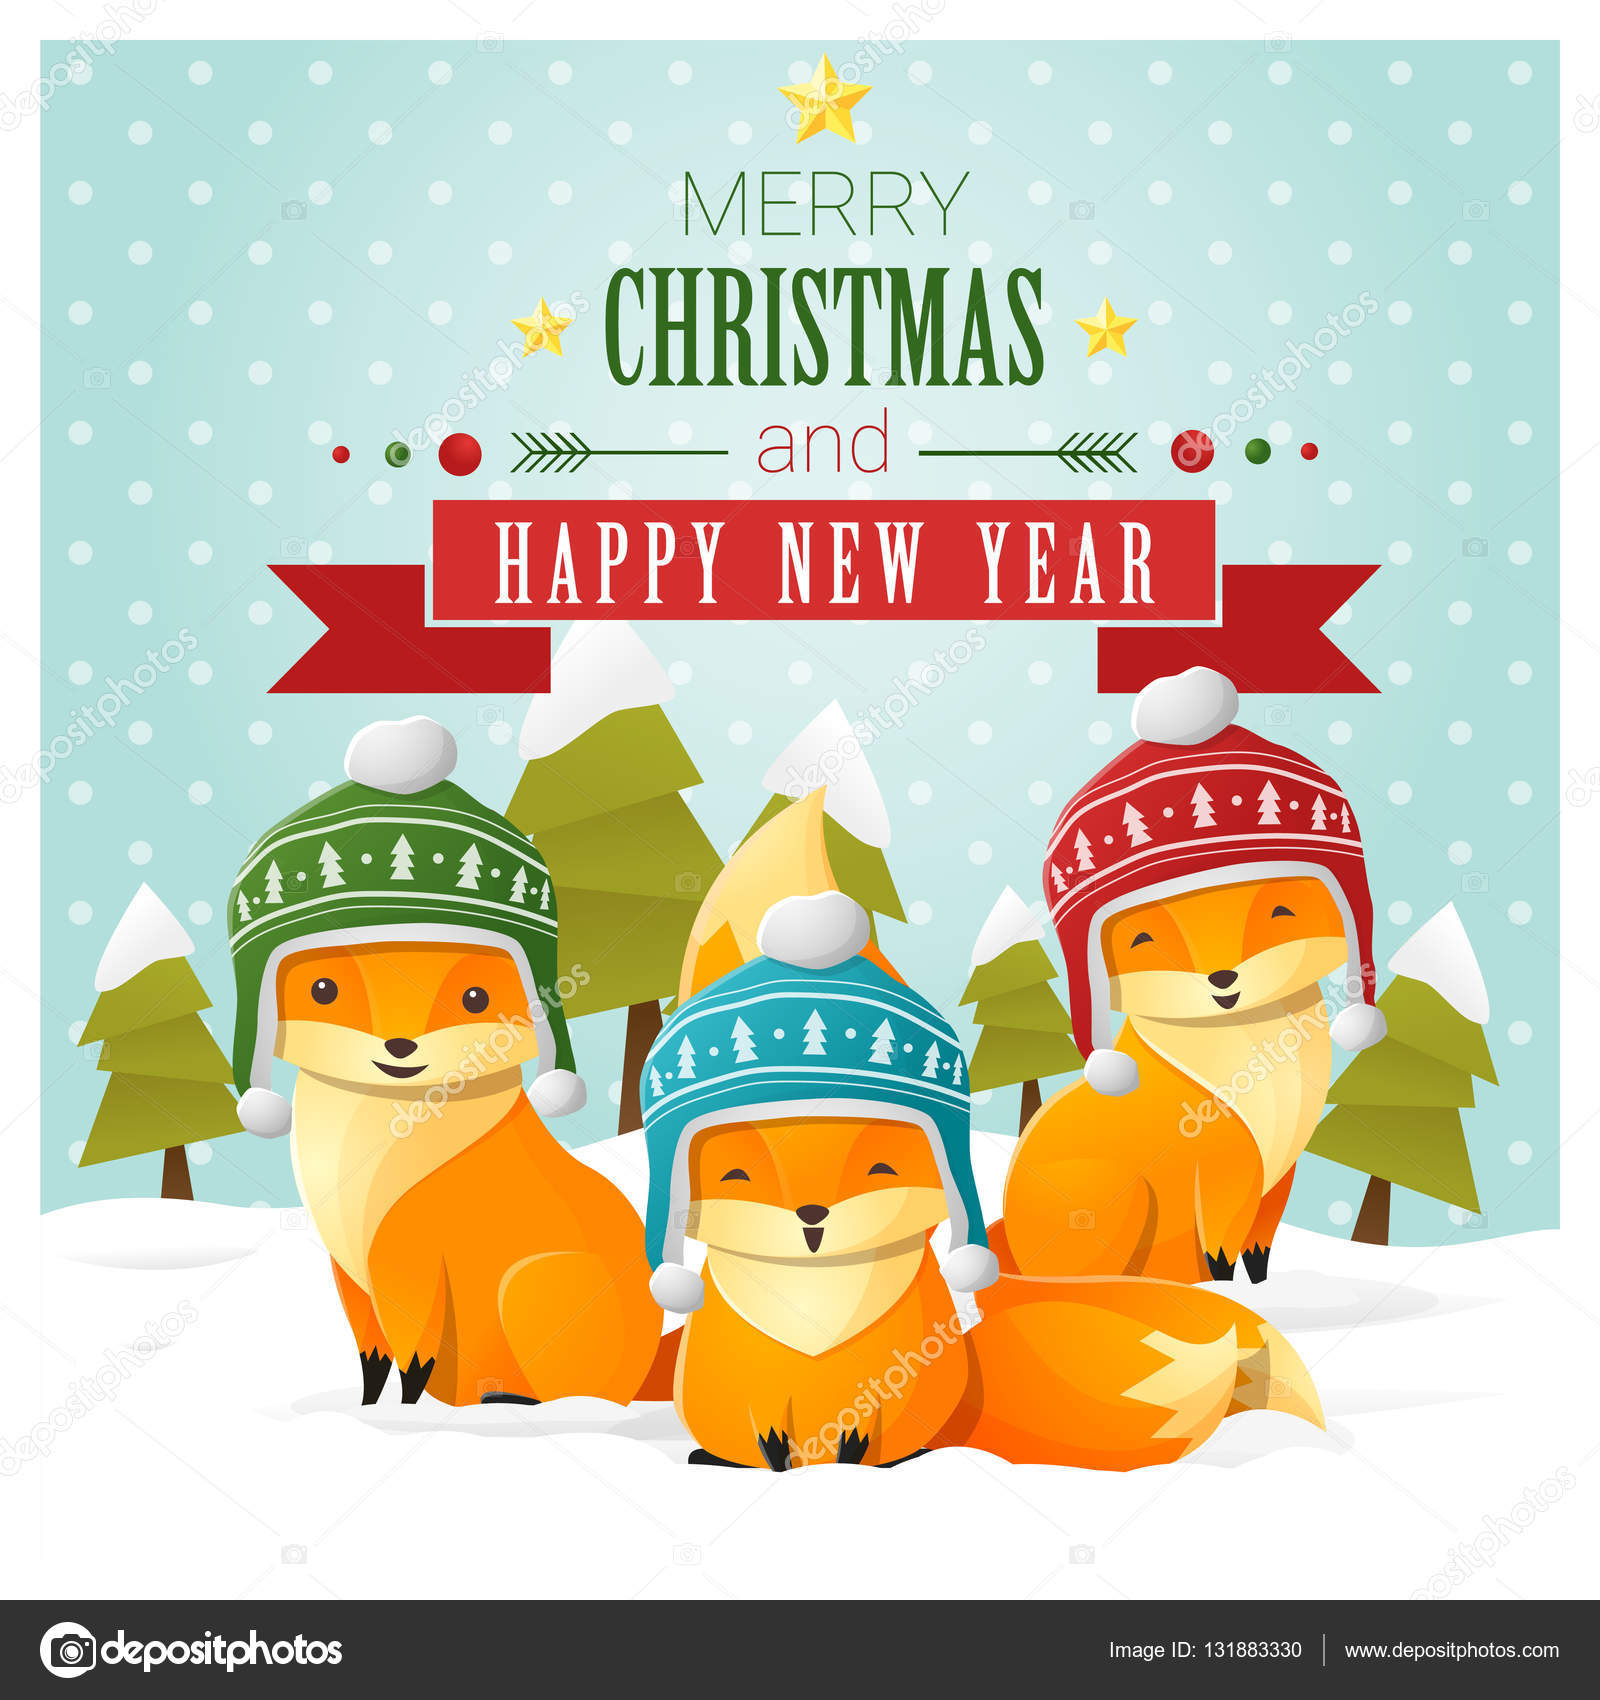 merry christmas and happy new year greeting card with fox family vector illustration